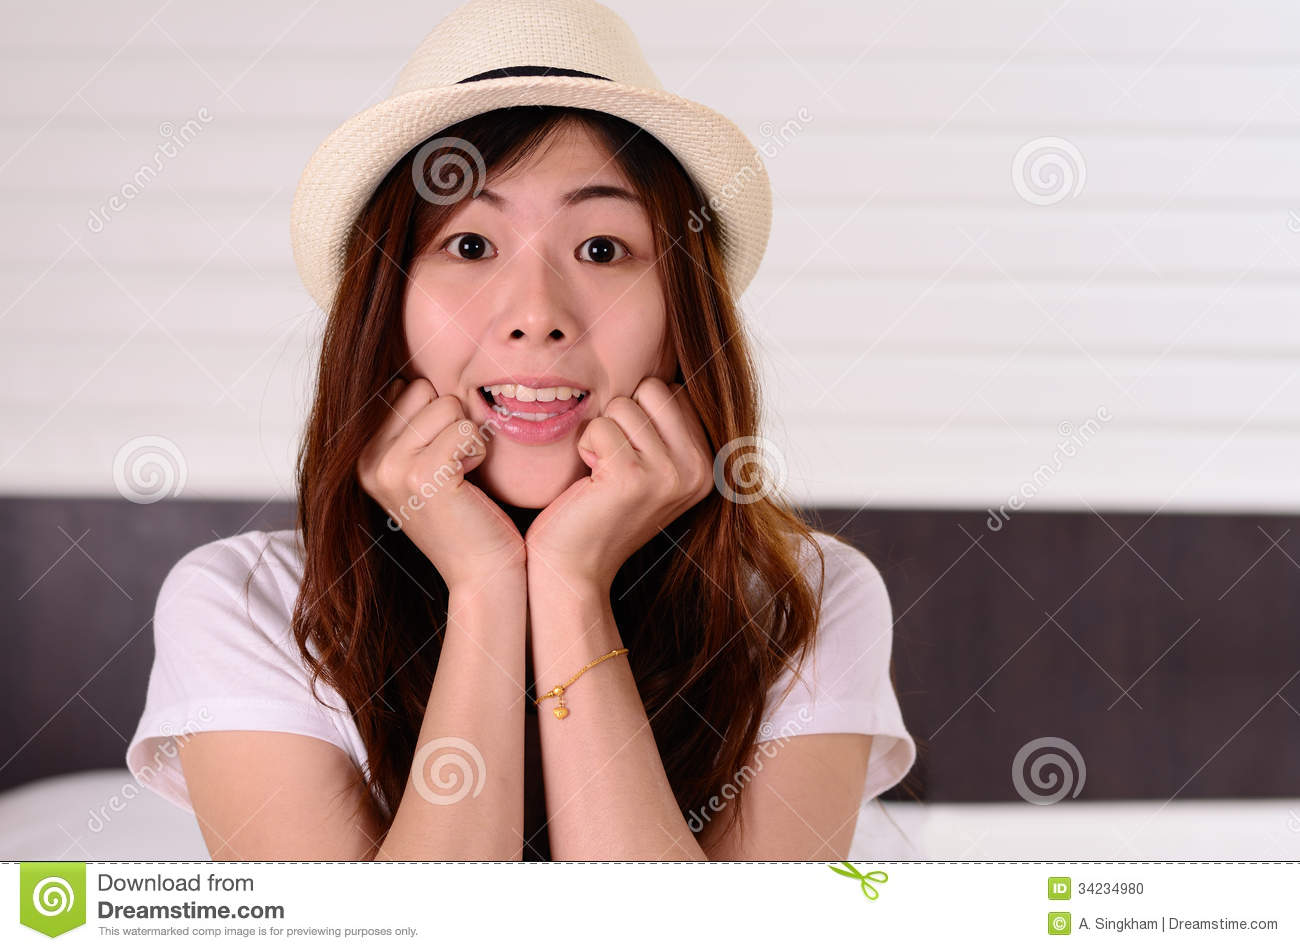 Asian woman teenager have a surprised face emotion